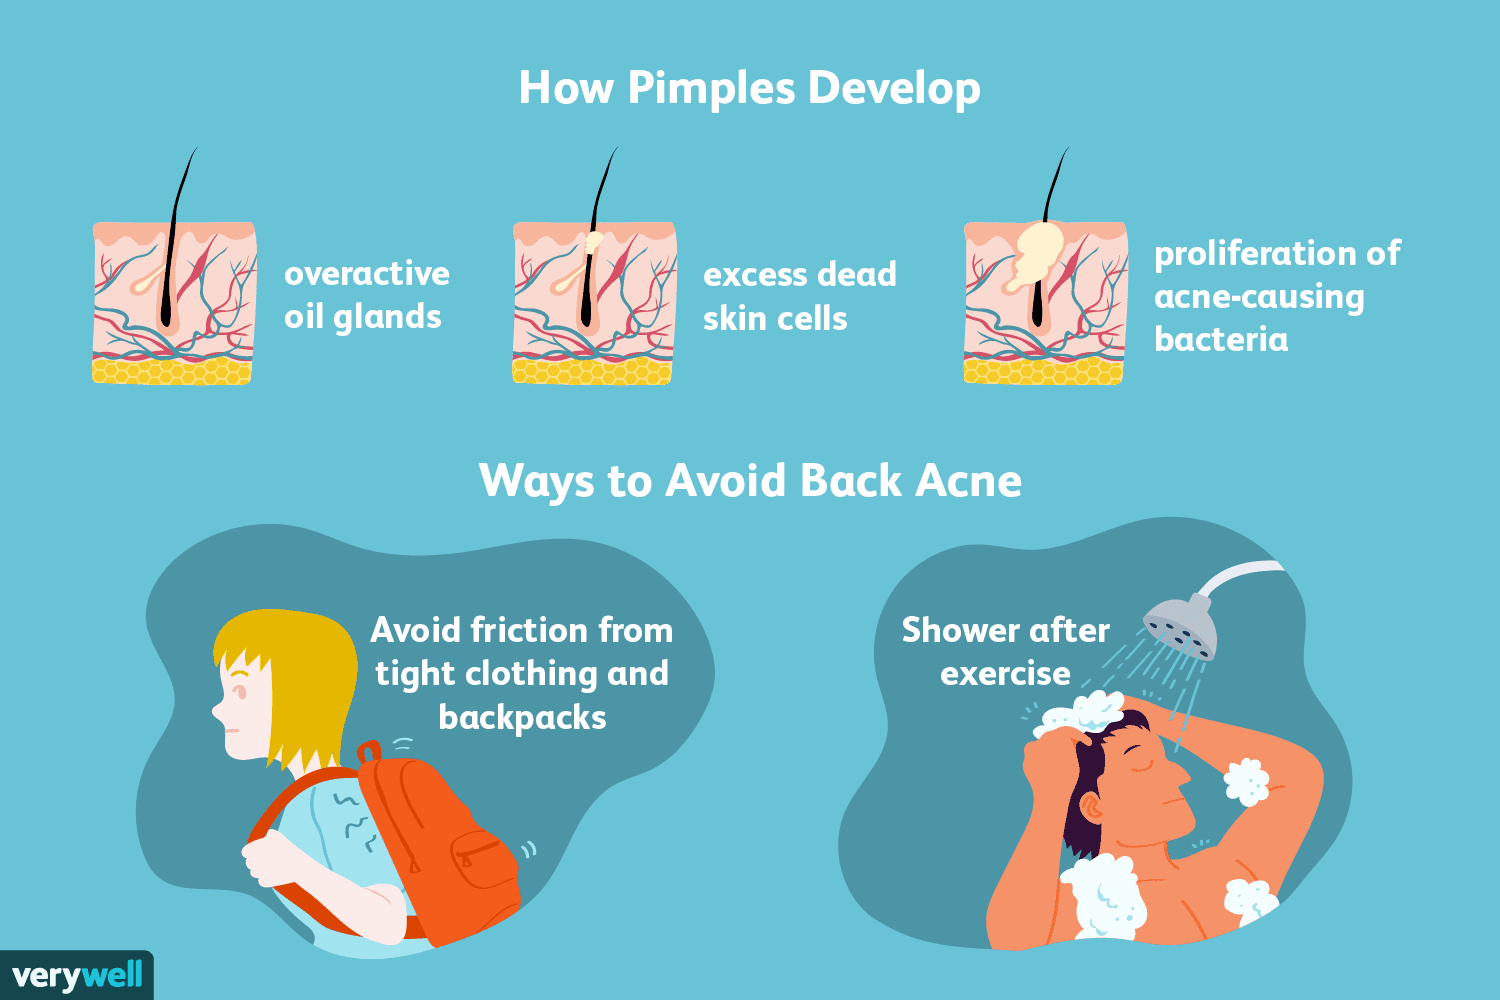 Body and Back Acne Basics, Causes, and Treatment